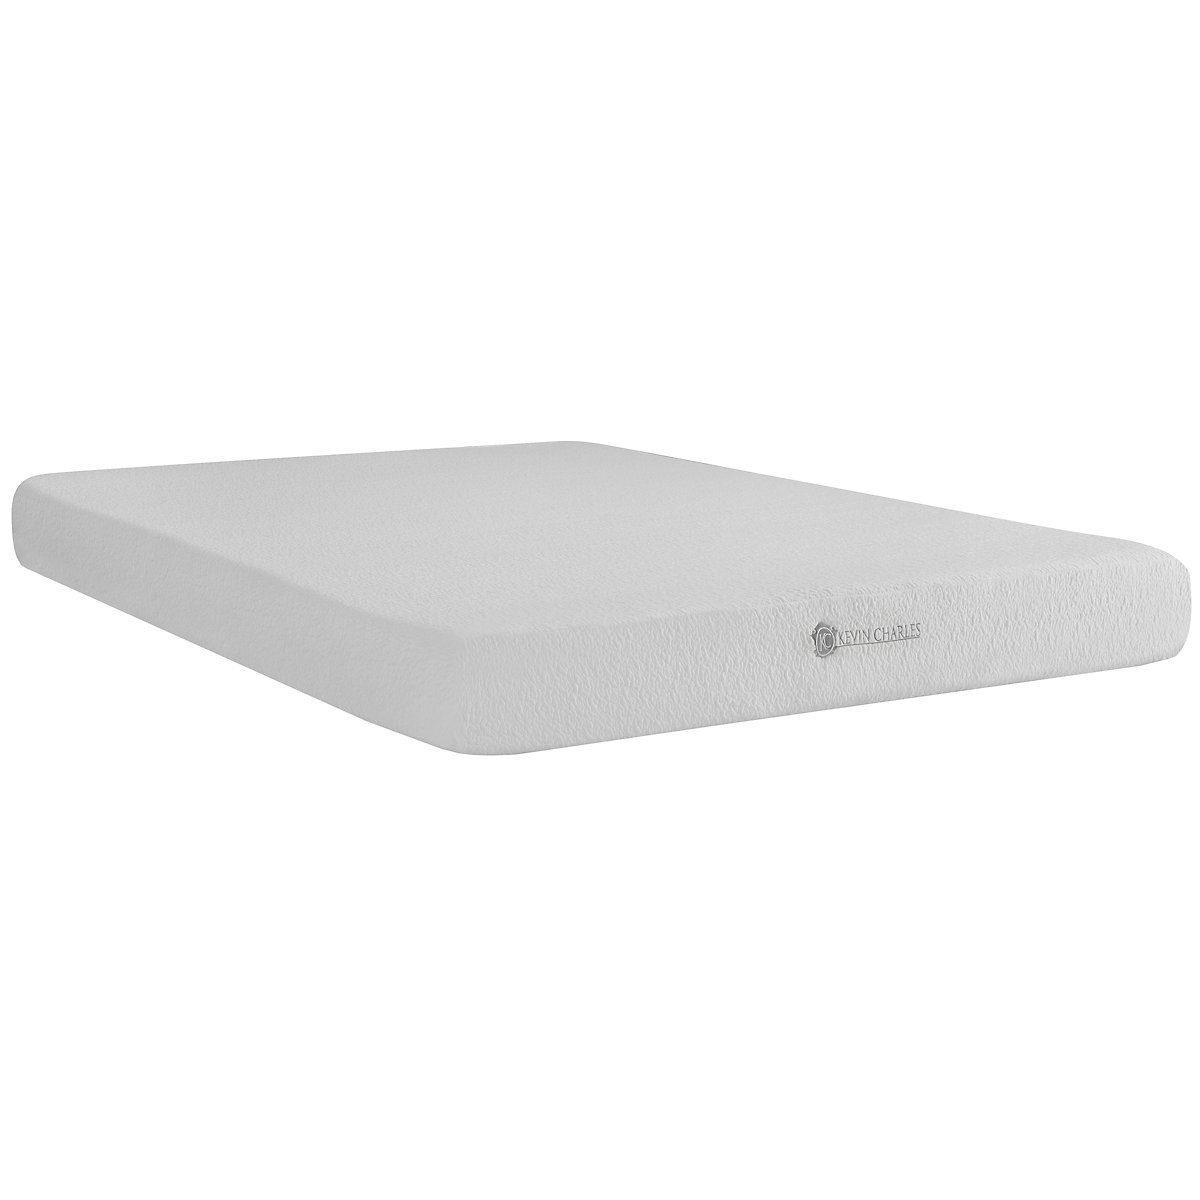 Kevin Charles Simplicity2 Firm Memory Foam Mattress